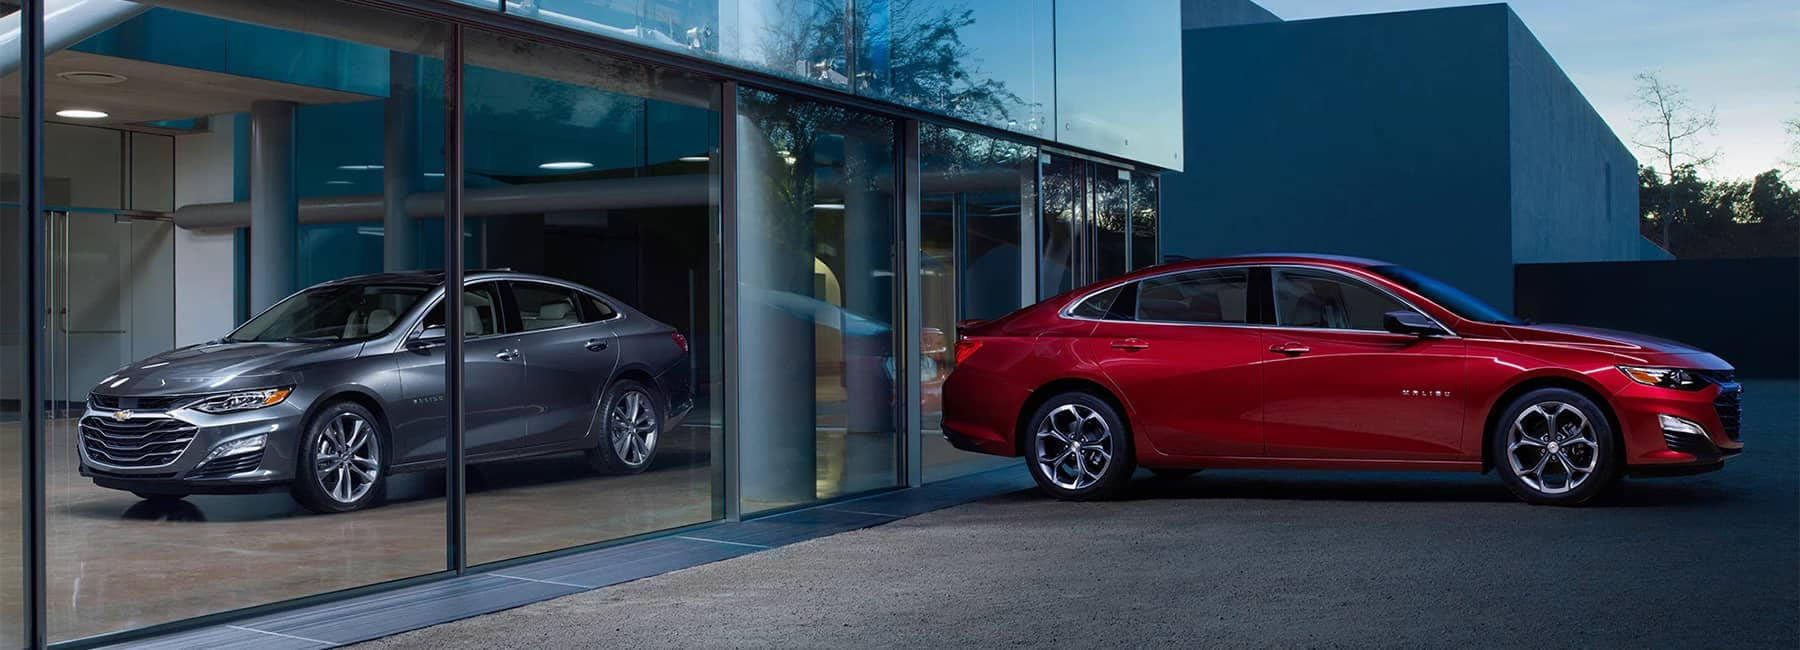 2019 Malibu Midsize Car Exterior Photo Side Profile and Front View